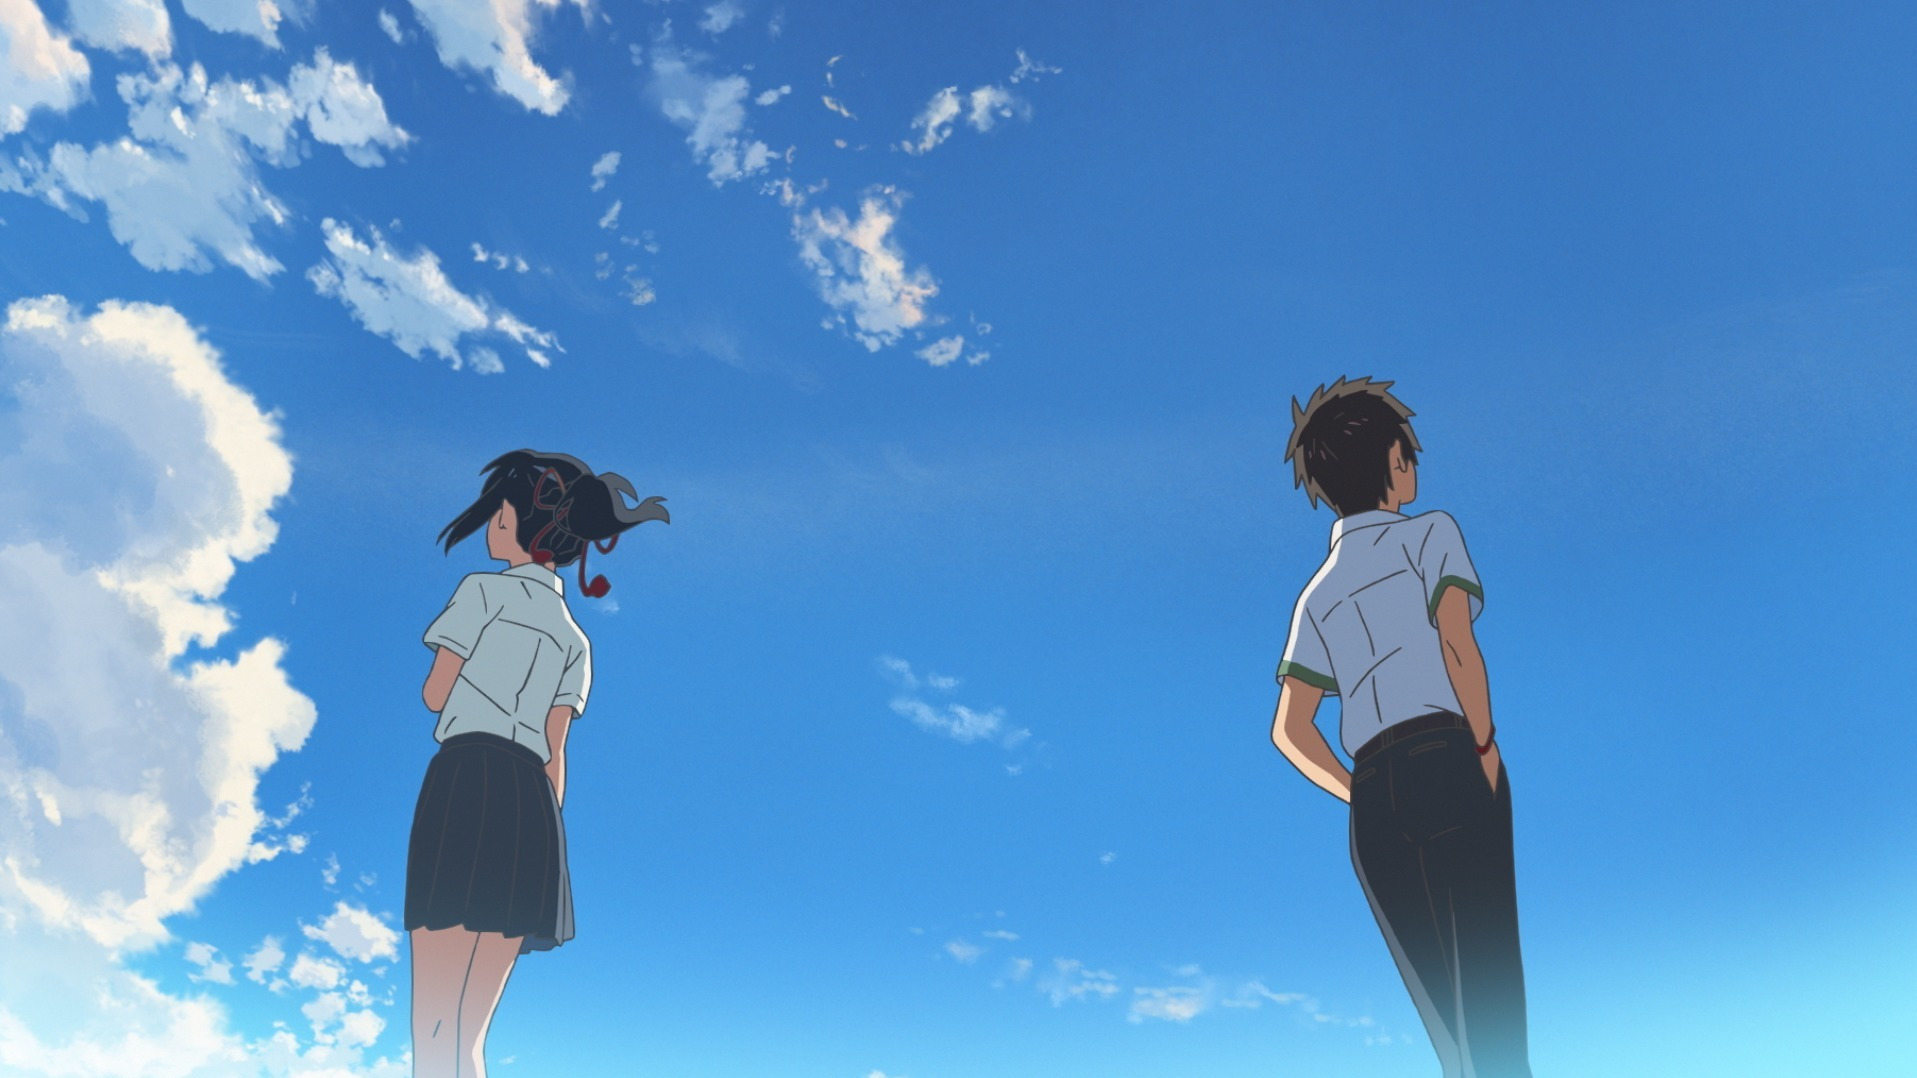 A Body-Switching Teen Romance Anime Disaster Flick With 'Your Name.' On It